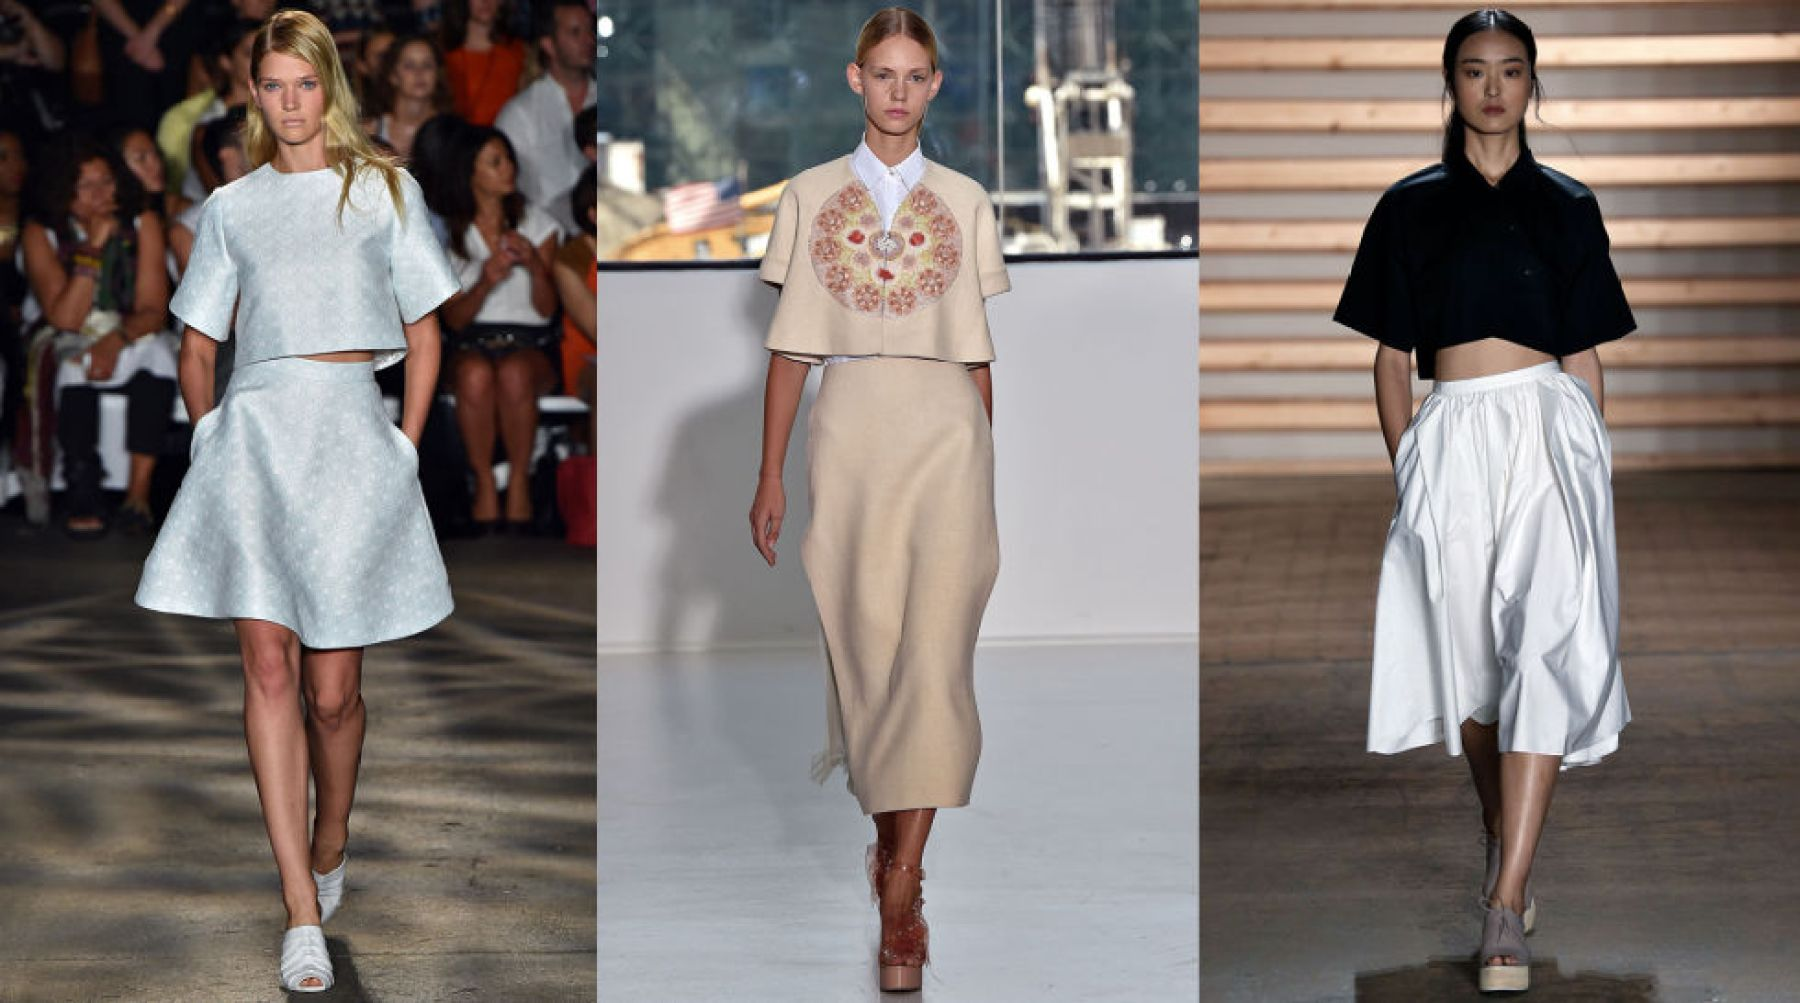 The crop top trend is still going strong, but this time in a less daunting form. Boxy crops feel more ladylike than their skimpy counterparts and are far more forgiving.<br /><br /><br /> (Pictured: Christian Siriano, Honor, Tibi)<br /><br /><br />